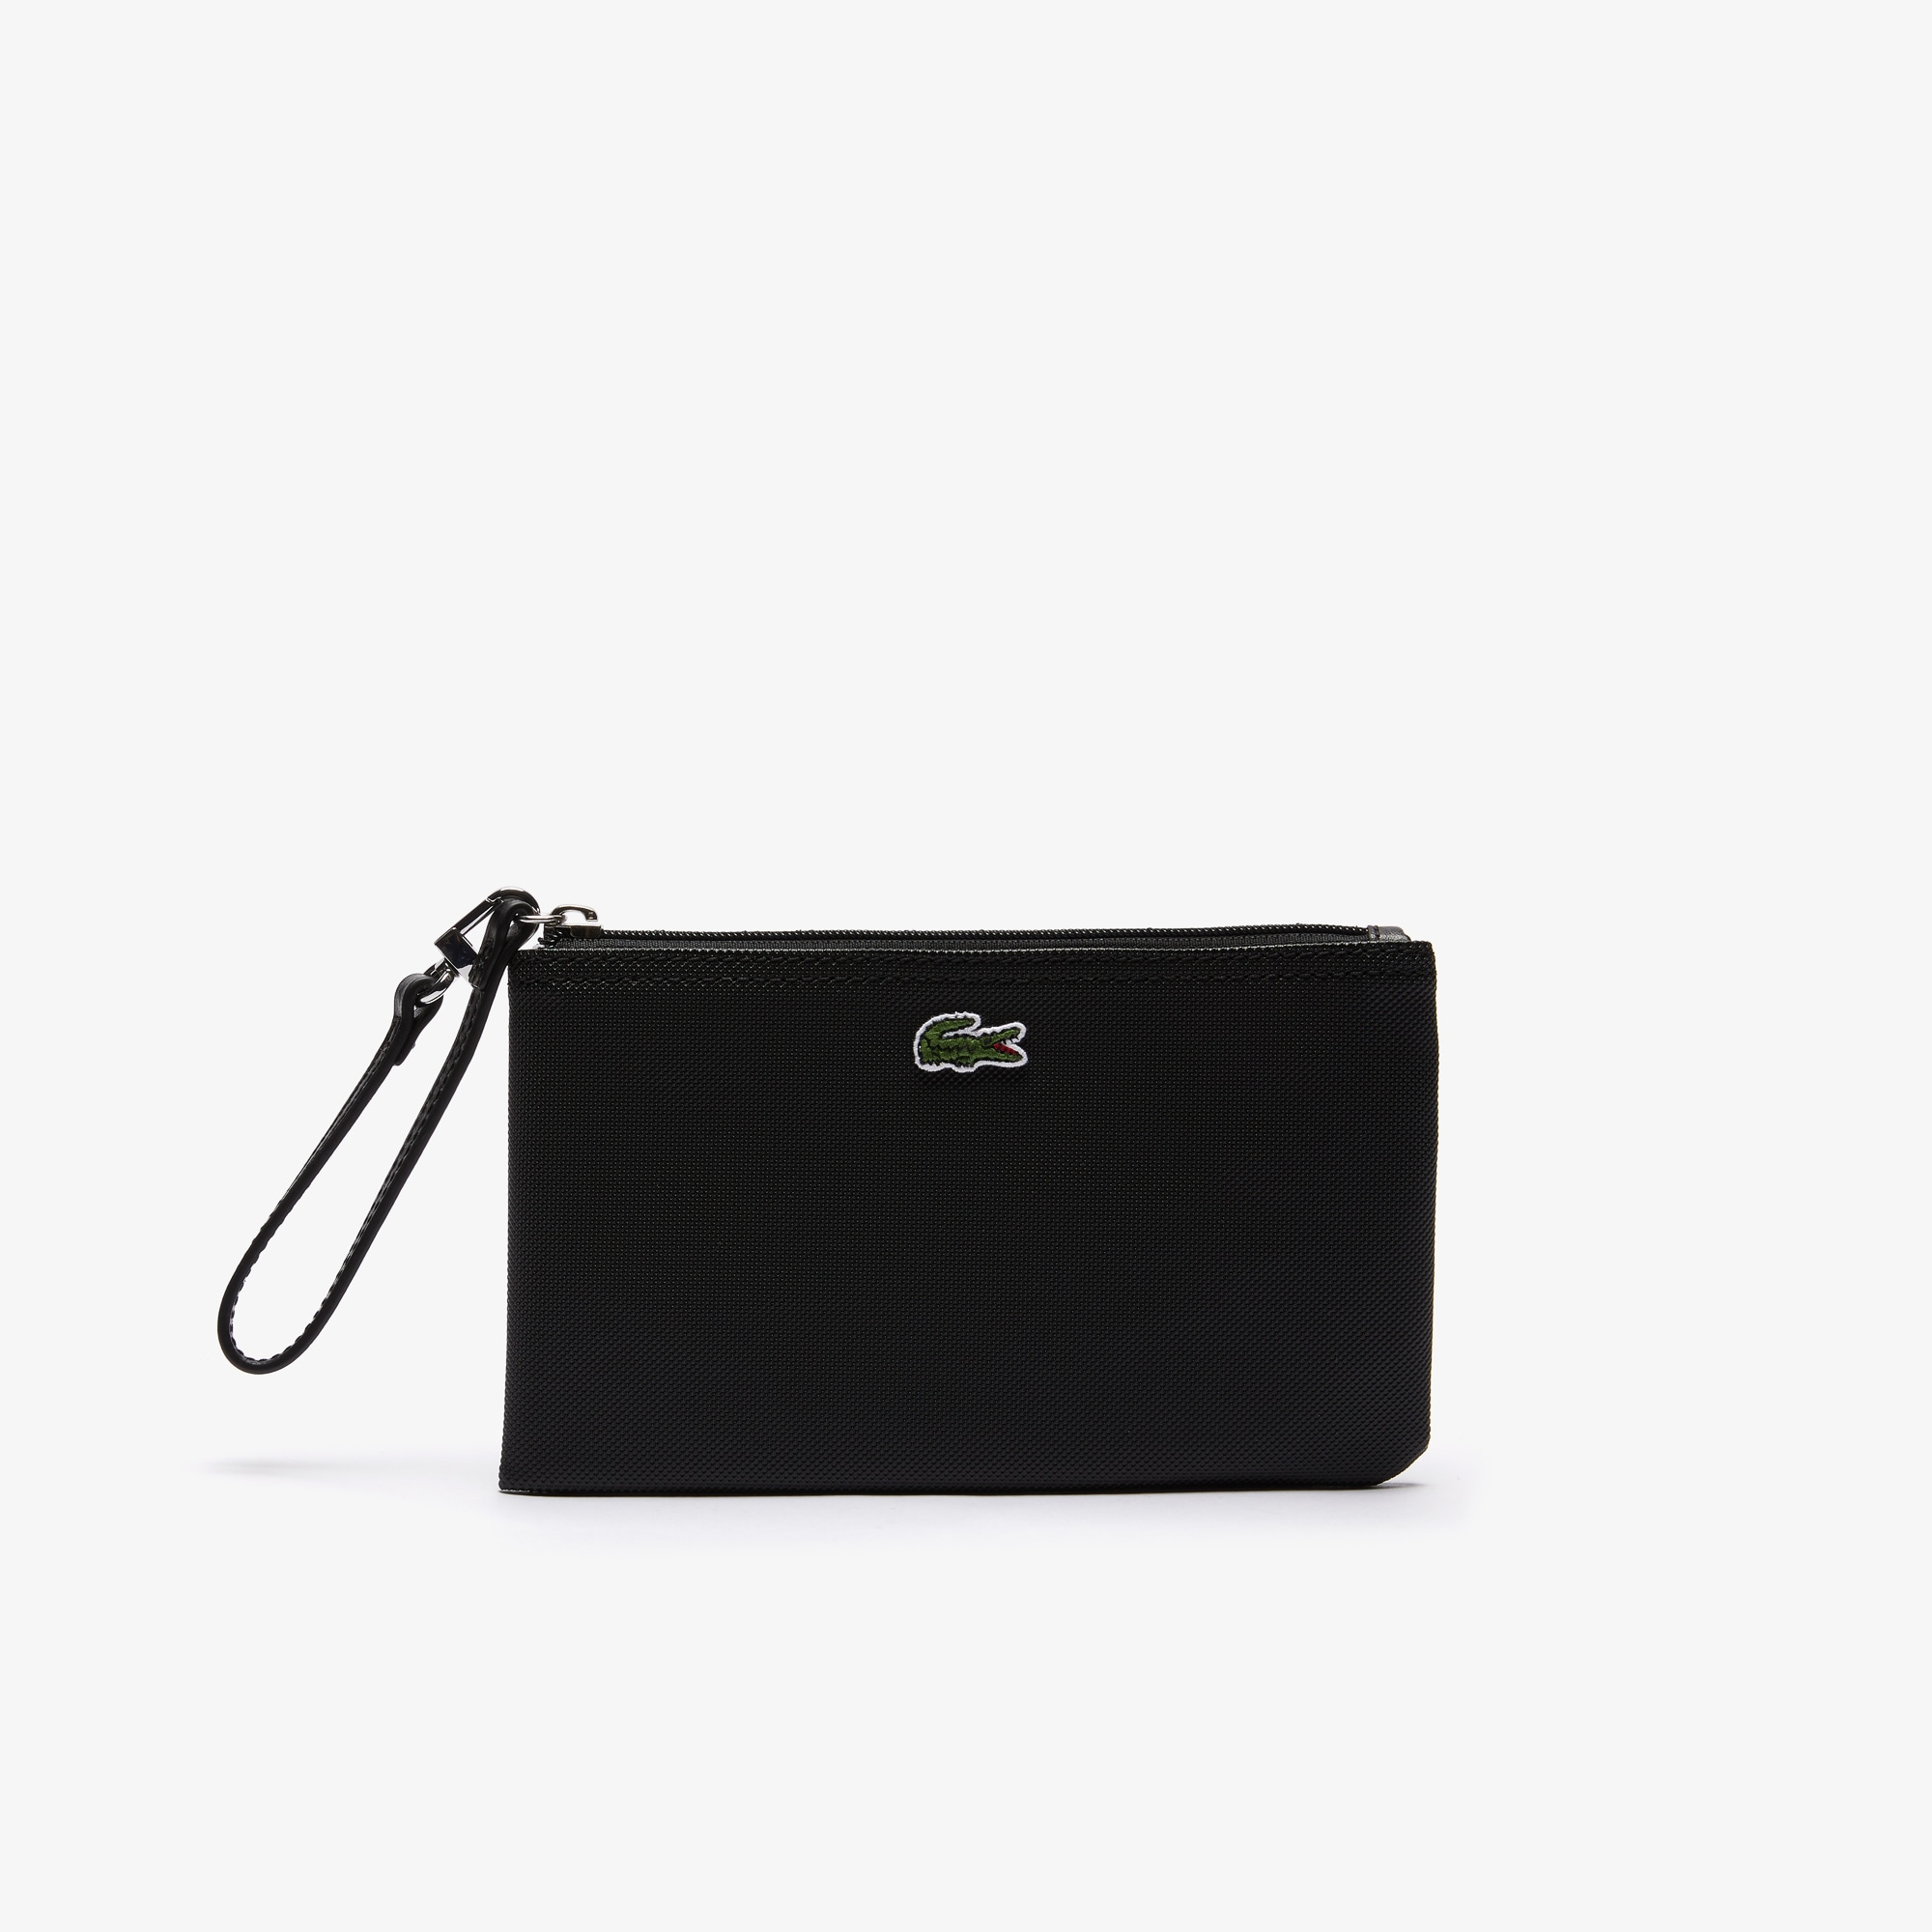 b30e6adaeac Small Leather Goods - Wallets | LACOSTE